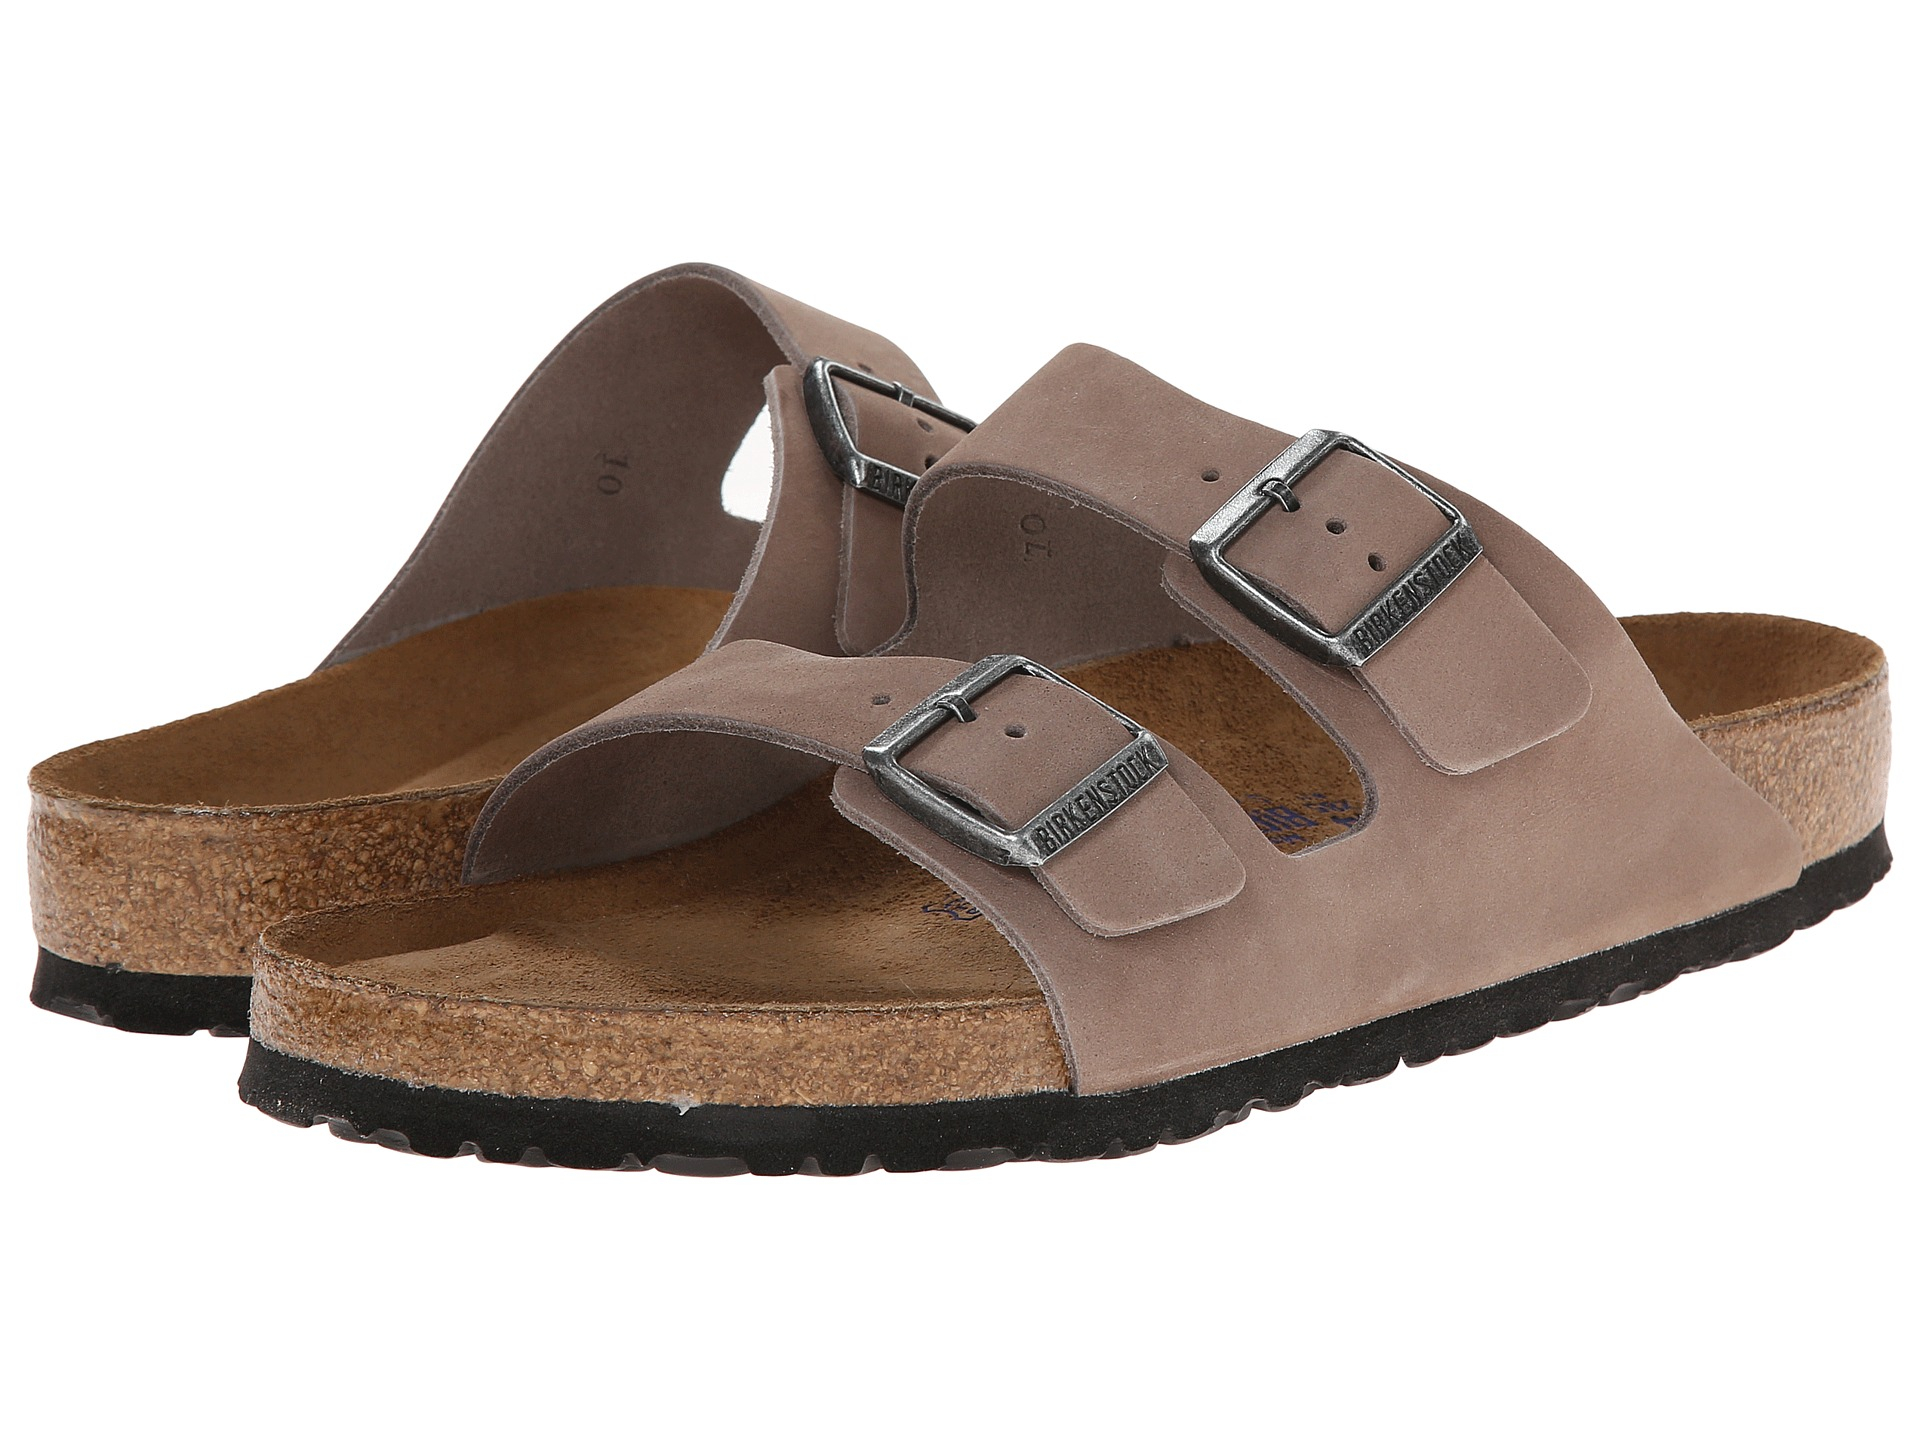 Lyst - Birkenstock Arizona Soft Footbed - Leather (unisex) in Natural